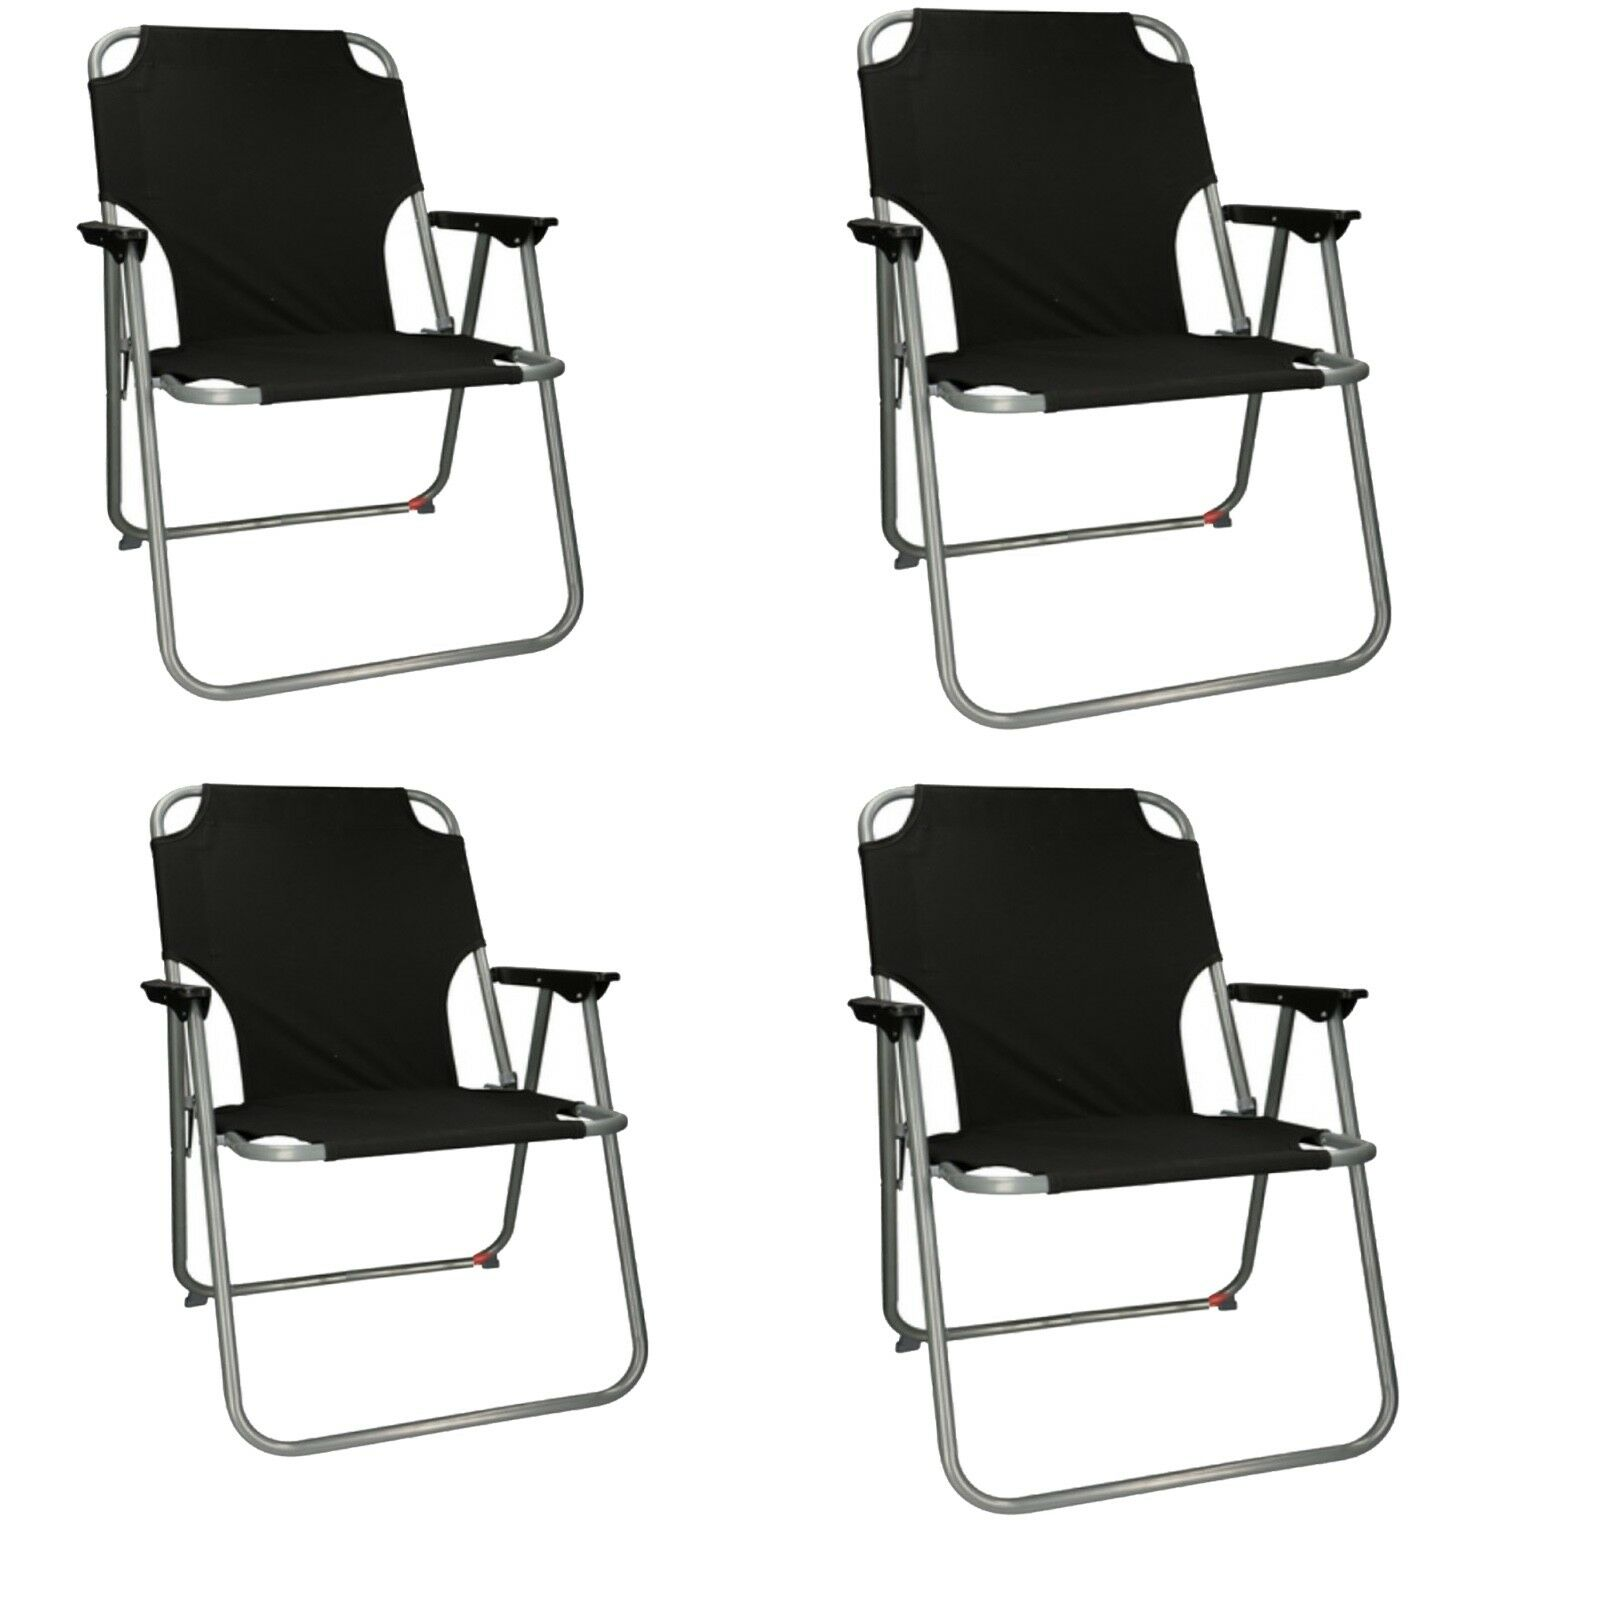 4x Outdoor Portable Folding Chair Camping Hiking Beach Seat Stool For BBQ Picnic